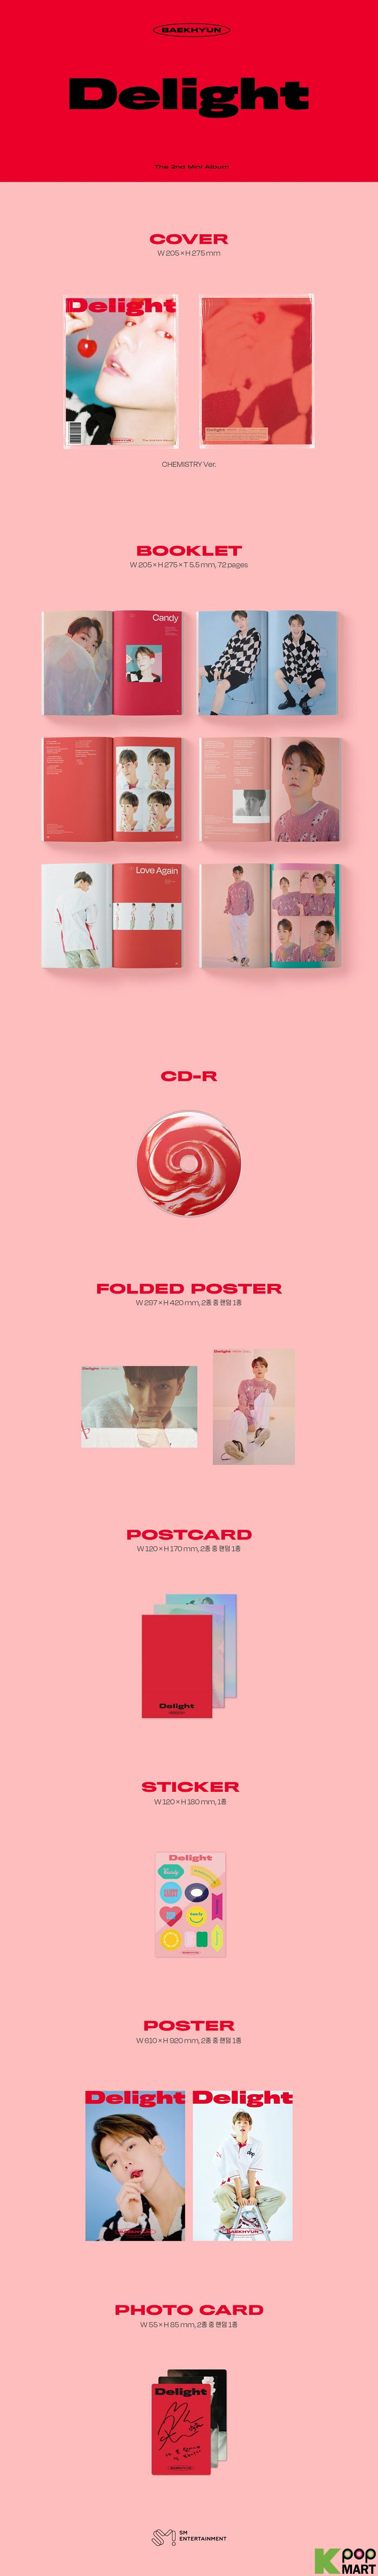 2nd Mini Album Photocard Set CD+Booklet+Folded Poster+Others with Extra Decorative Sticker Set Pre Order Chemistry Ver. Delight Baekhyun